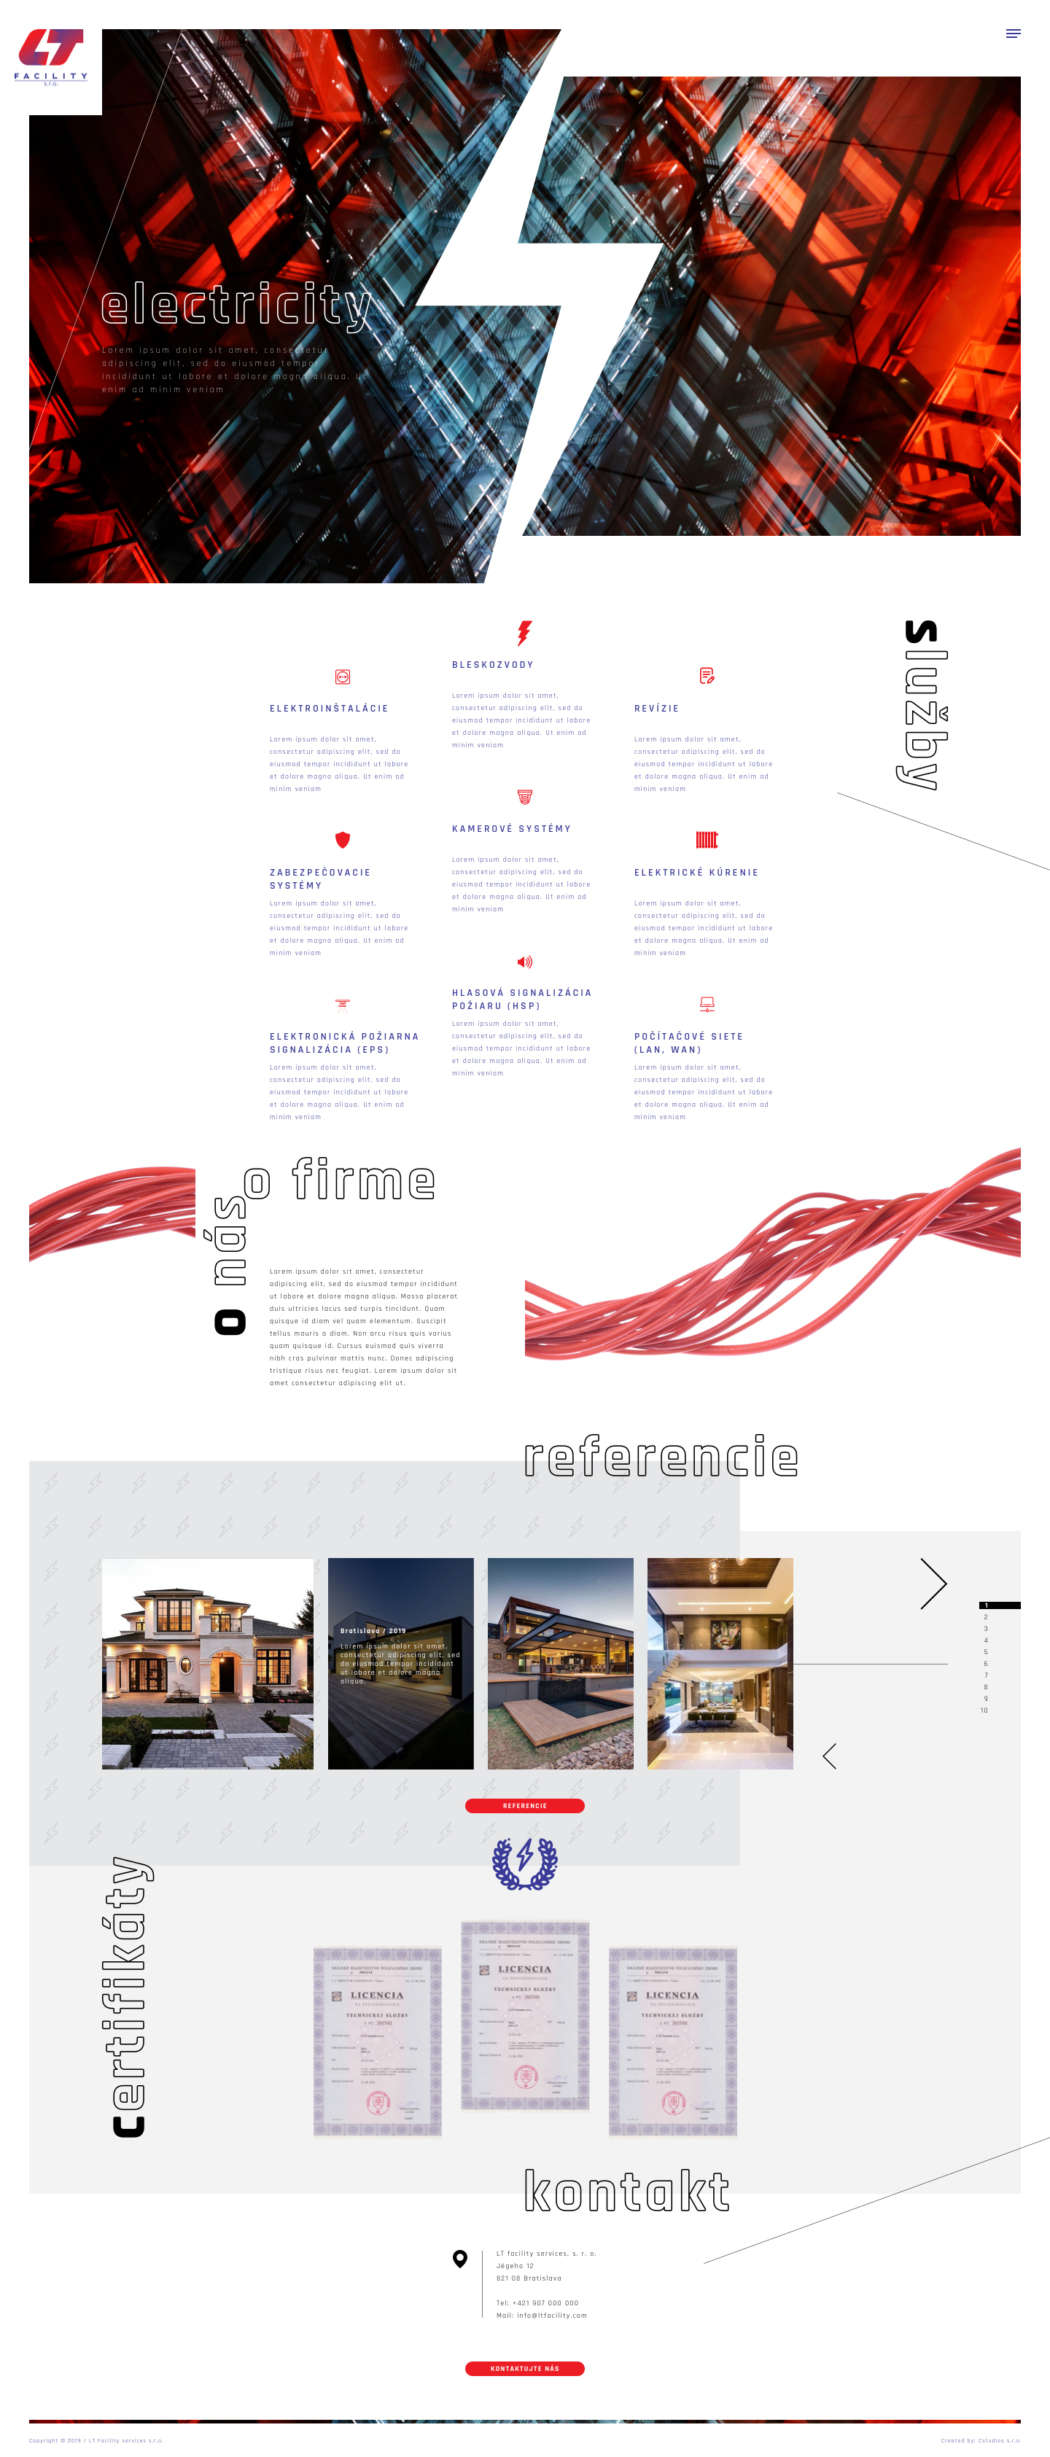 LT facility s.r.o. - webdesign | Grafikerik